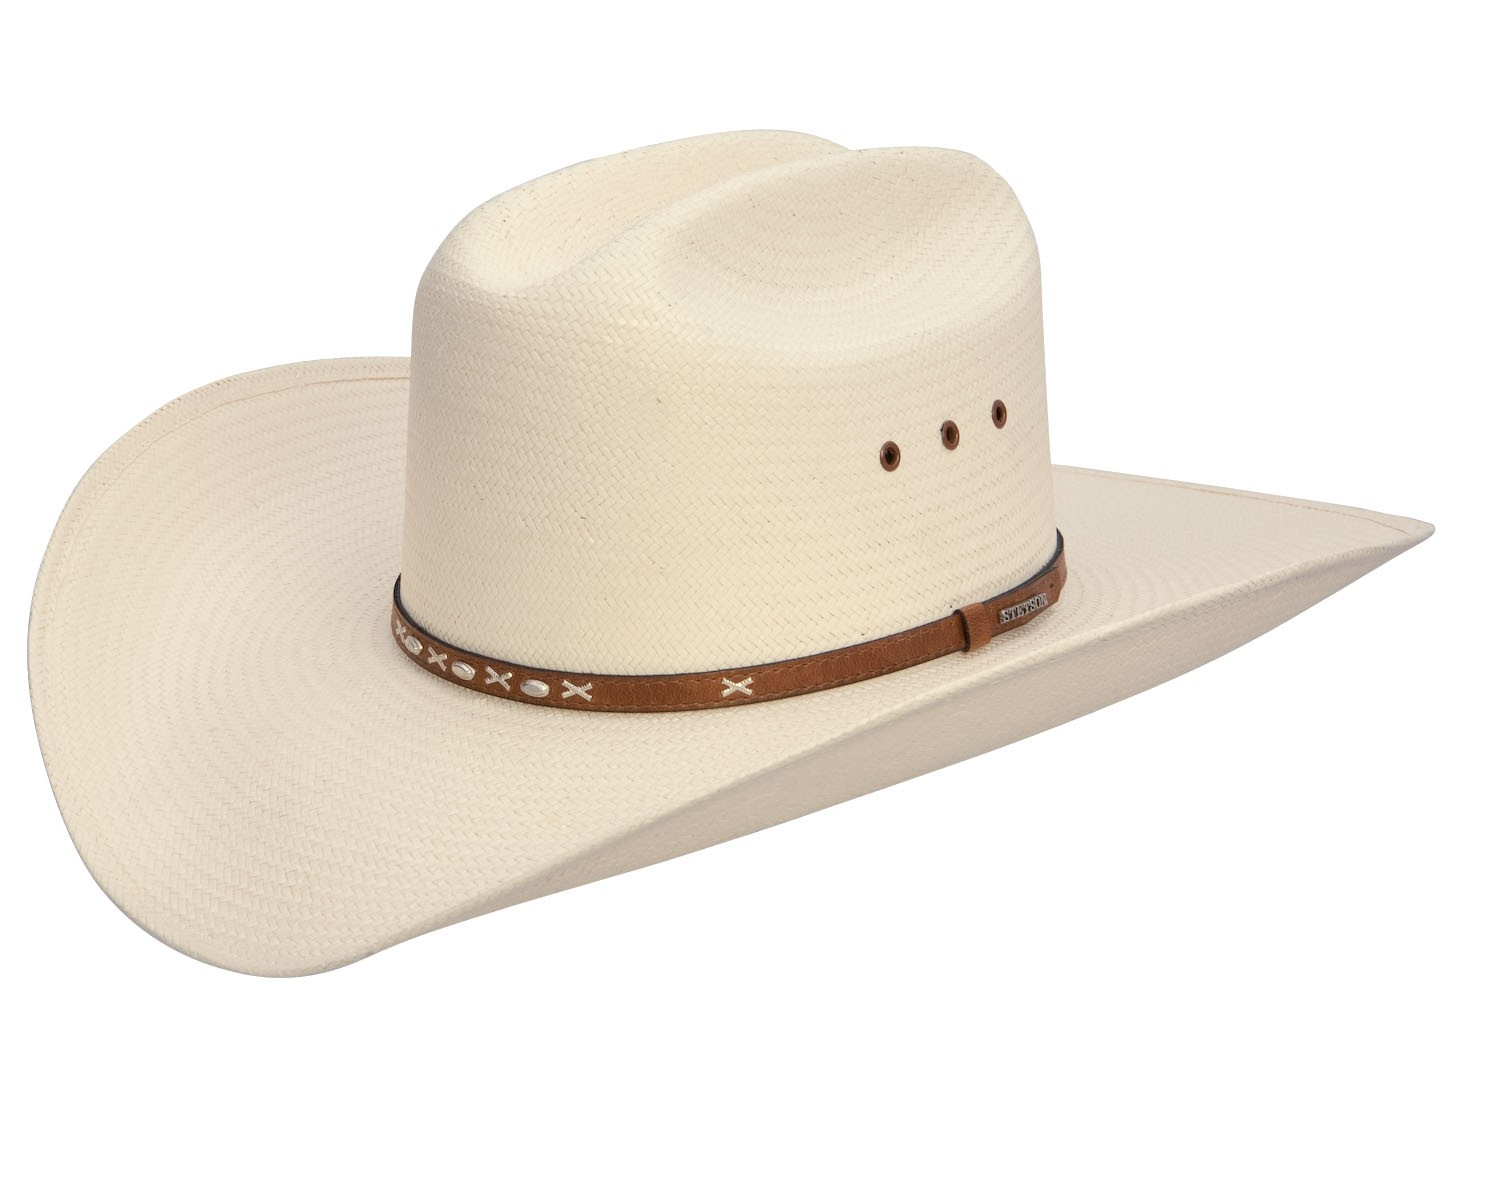 c2d0c66d6c8 Stetson Hats For Sale Ebay